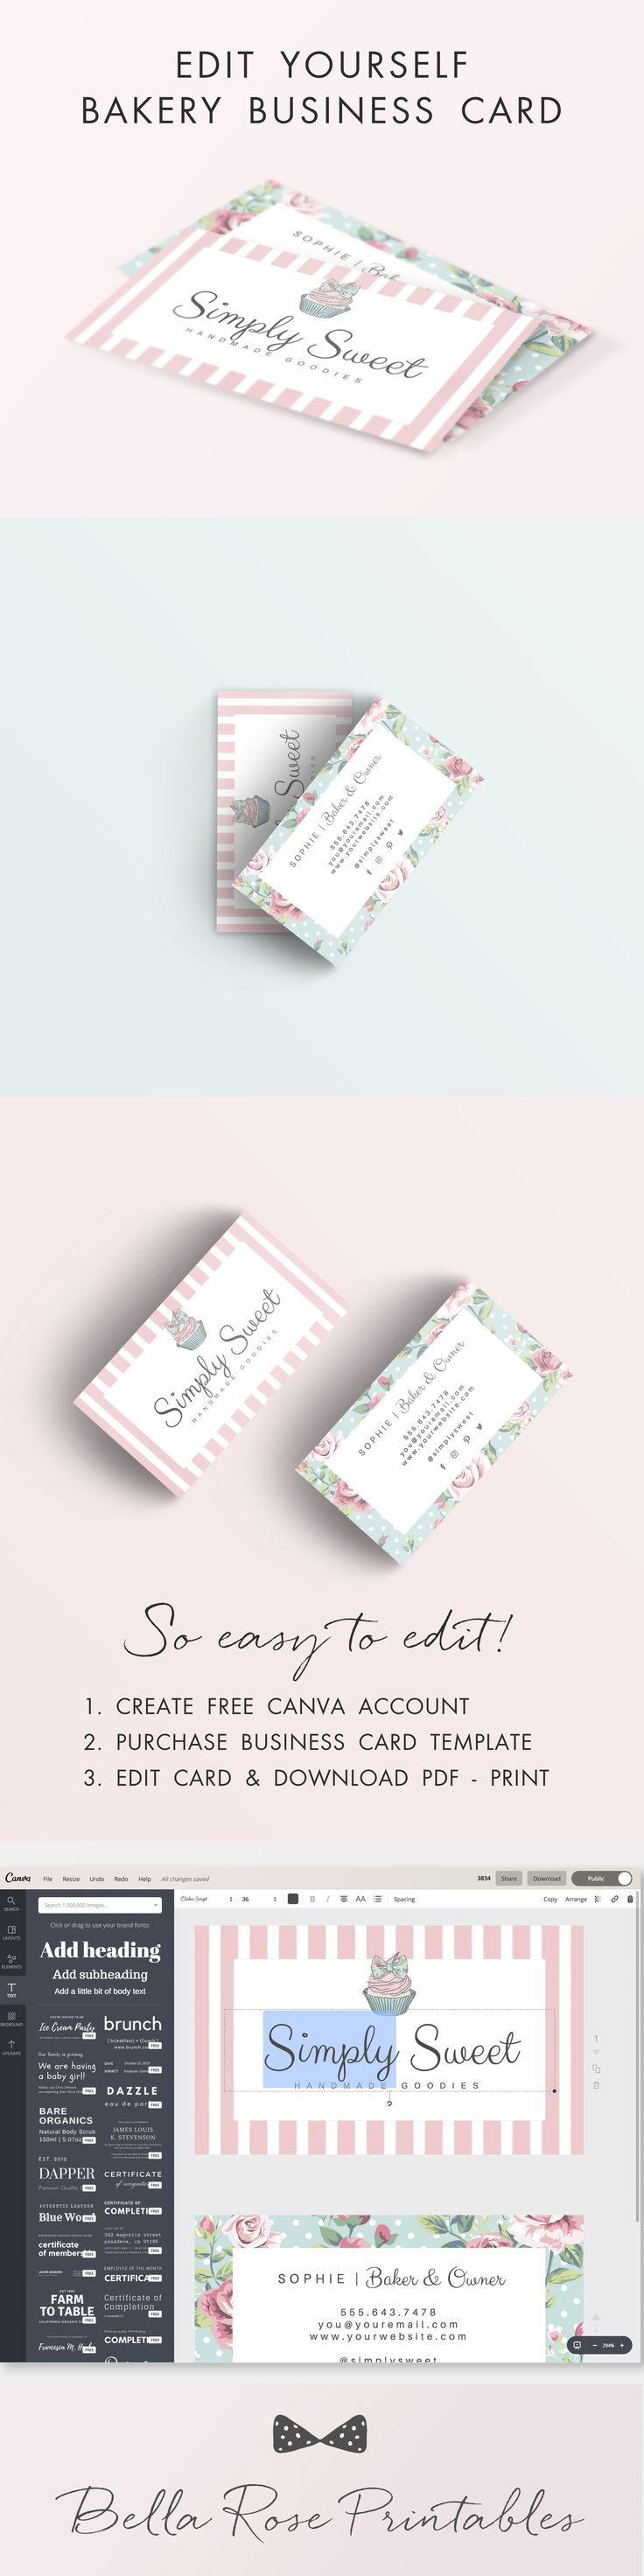 Cupcake Bakery Business Cards. This is a fully customizable business ...